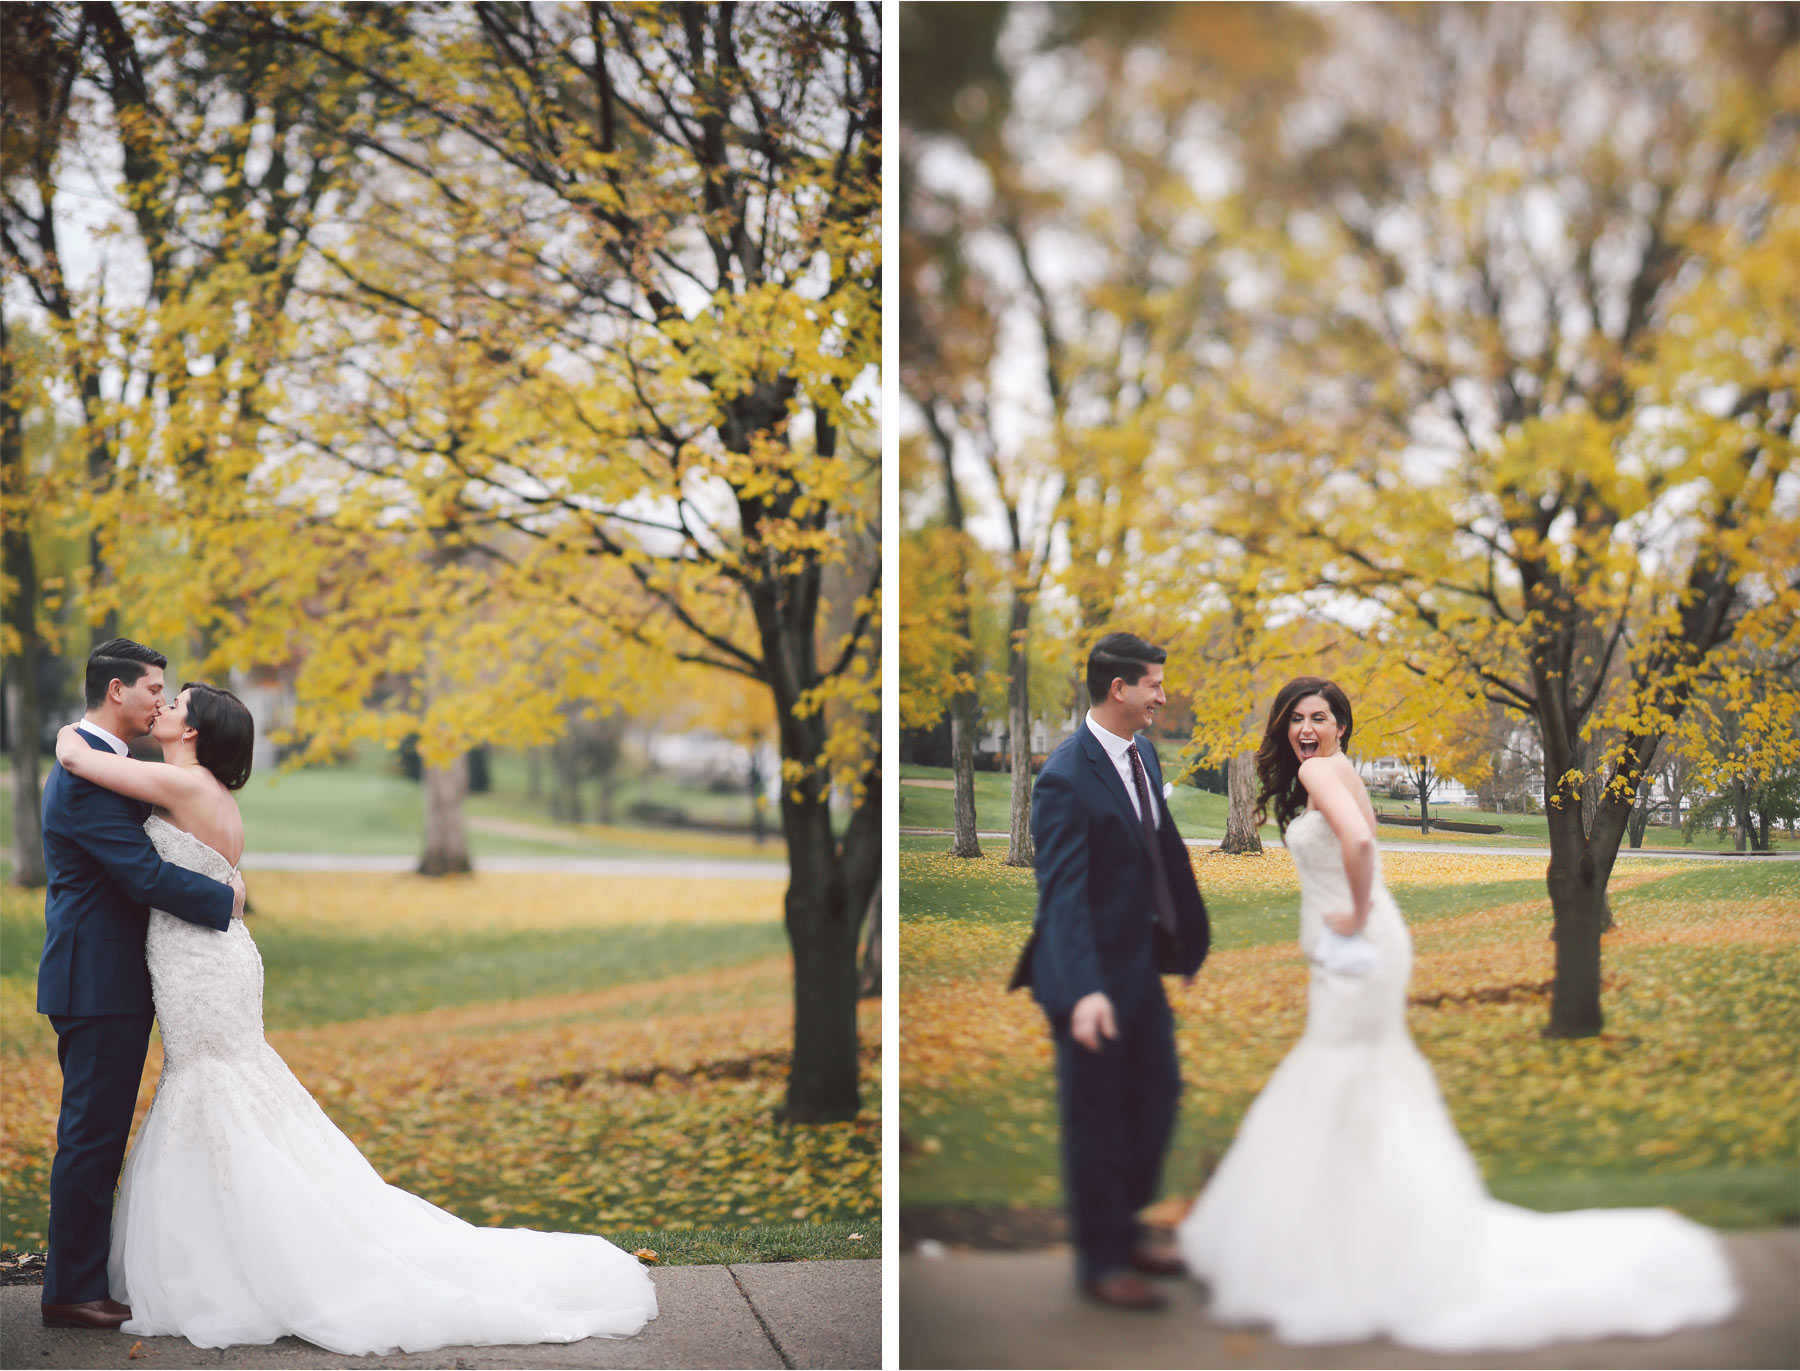 03-Minneapolis-Minnesota-Wedding-Photography-by-Vick-Photography-First-Look-Autumn-Fall-Colors-Jana-and-Matt.jpg